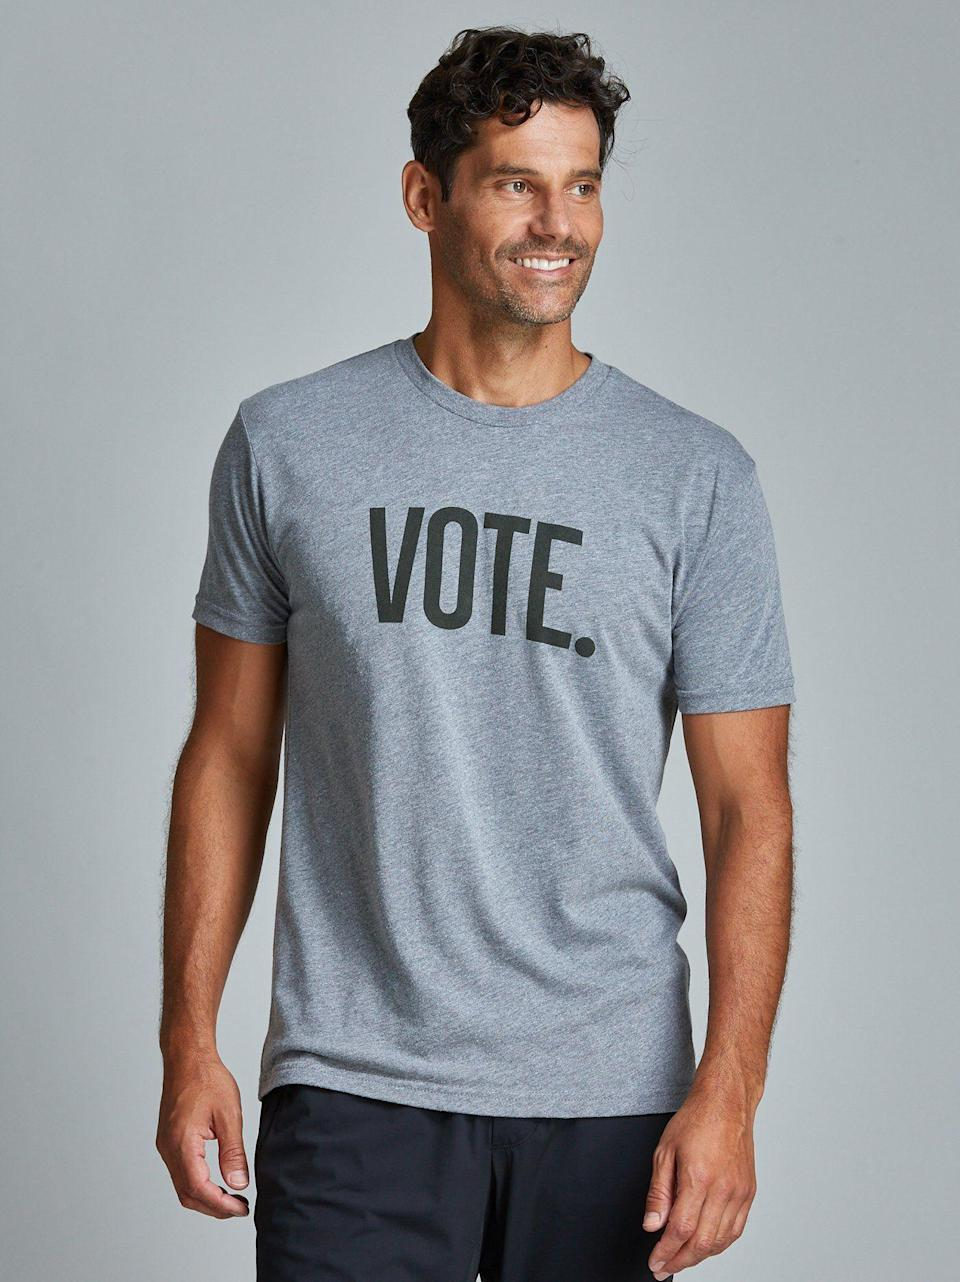 """<p><strong>Fourlaps</strong></p><p>fourlaps.com</p><p><strong>$48.00</strong></p><p><a href=""""https://www.fourlaps.com/collections/new-arrivals/products/vote-signature-tee?variant=31788075745353"""" rel=""""nofollow noopener"""" target=""""_blank"""" data-ylk=""""slk:SHOP IT"""" class=""""link rapid-noclick-resp"""">SHOP IT</a></p><p>Make sure the men in your life are registered to vote and gift them this """"Vote"""" tee from Fourlaps. All proceeds from the tee will go to <a href=""""https://www.headcount.org/"""" rel=""""nofollow noopener"""" target=""""_blank"""" data-ylk=""""slk:HeadCount"""" class=""""link rapid-noclick-resp"""">HeadCount</a>—a nonpartisan organization that """"uses the power of music to register voters and promote participation in democracy.""""</p>"""